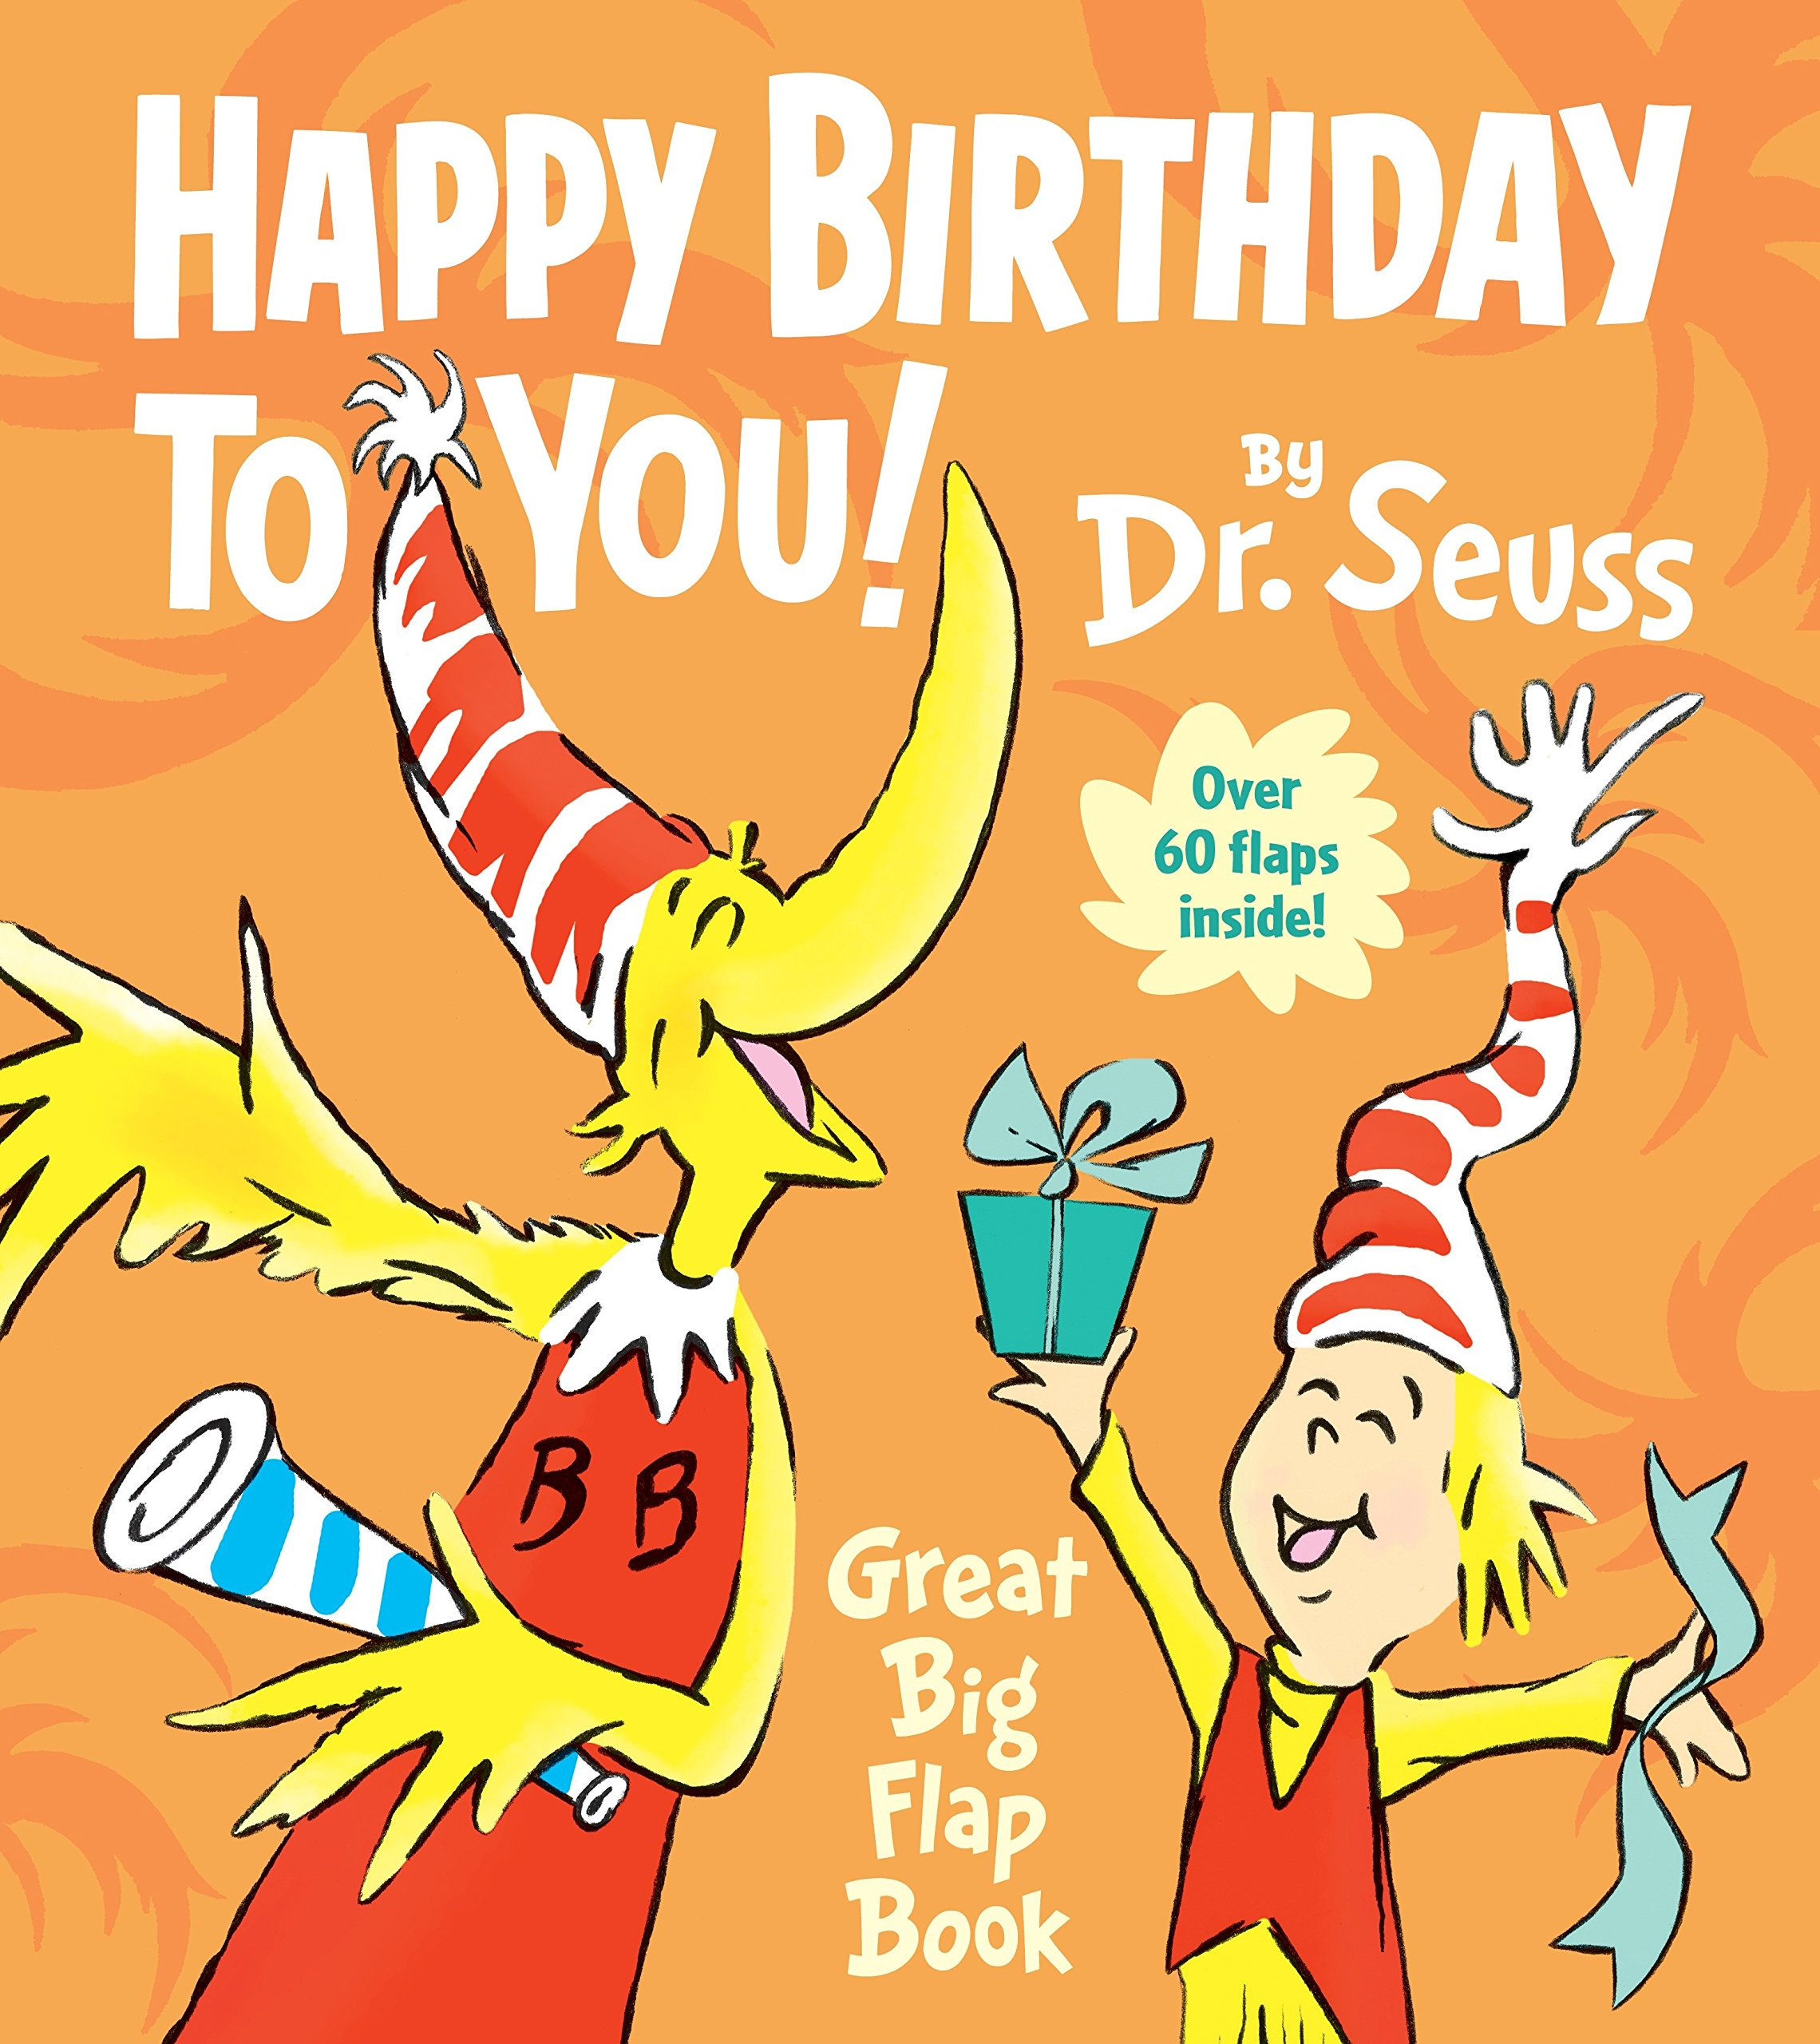 Amazon com: Happy Birthday to You! Great Big Flap Book